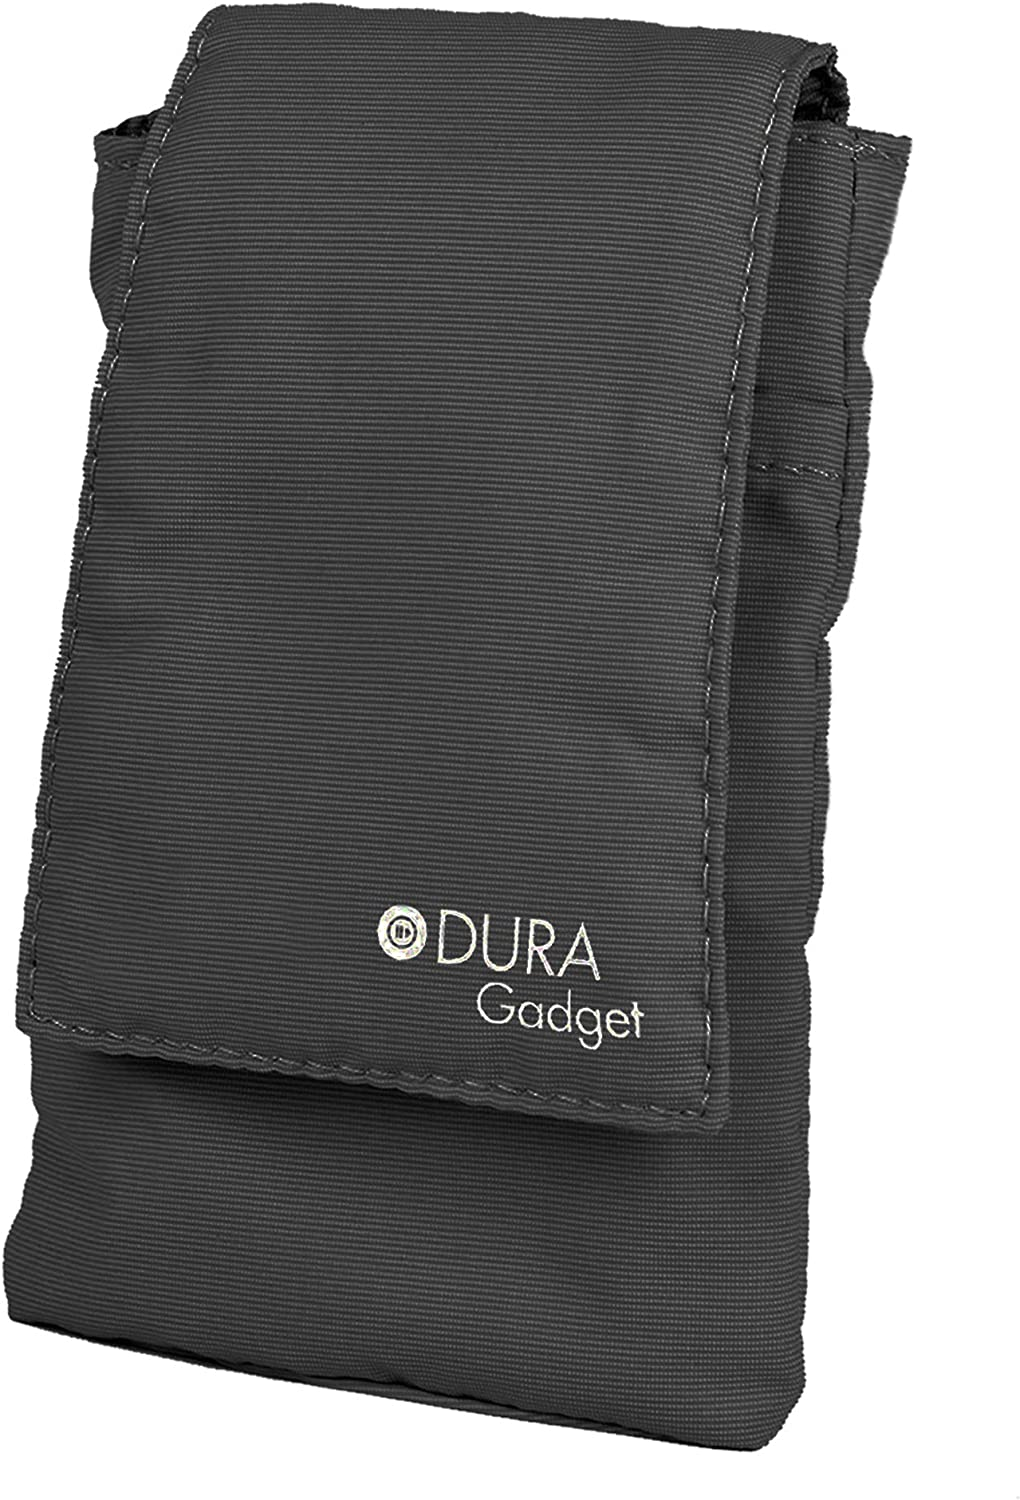 DURAGADGET Lightweight Cushioned & Ultra-Portable Smartphone Case in Black - Compatible with Acer Liquid Z320 & Z330 Smartphone